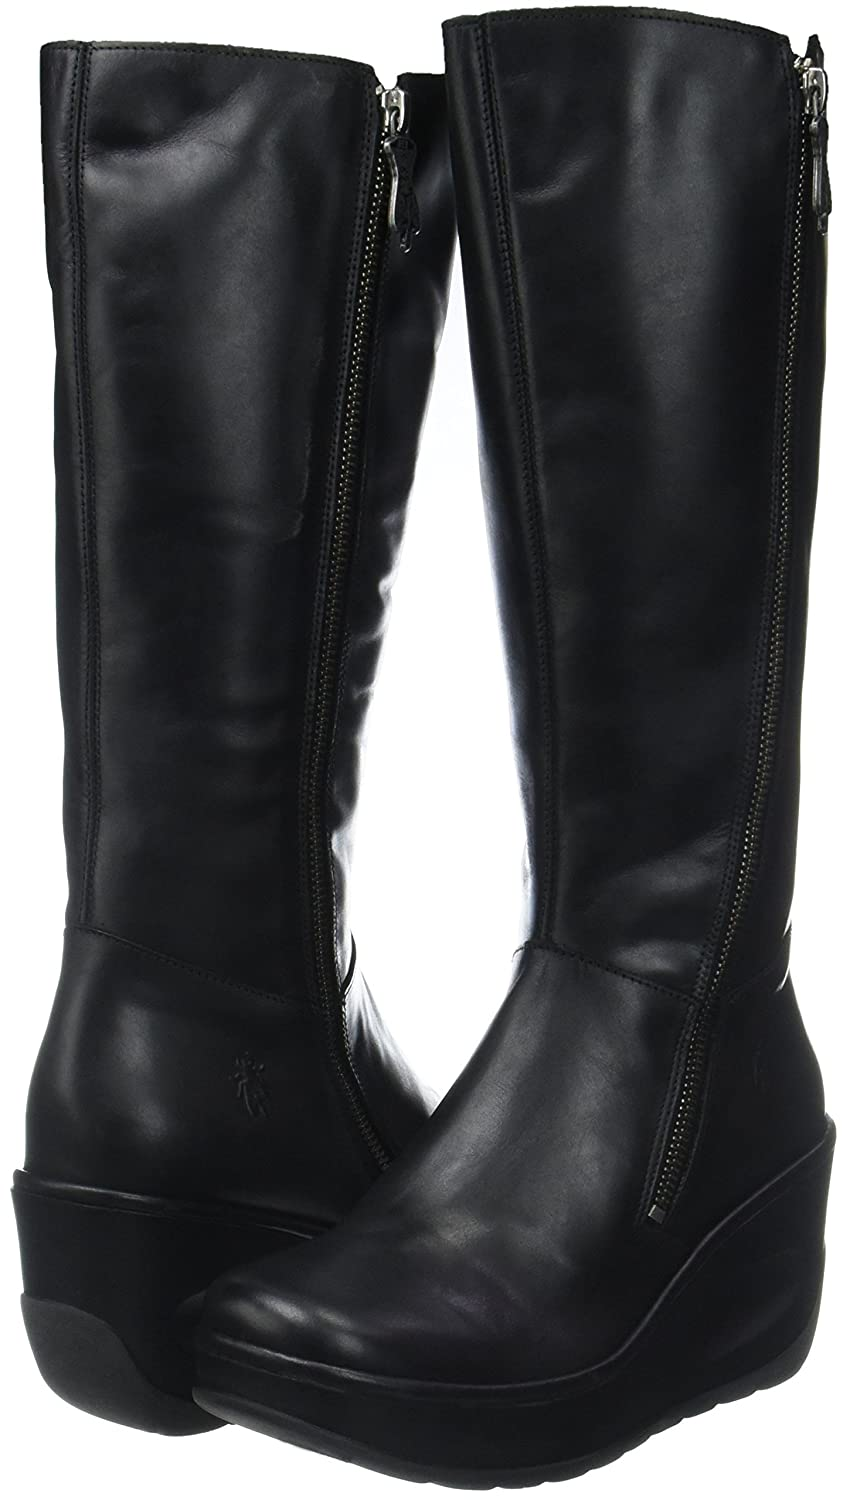 Fly London JATE917FLY Leather Zip-Up Knee-Length Wedge Womens Boots